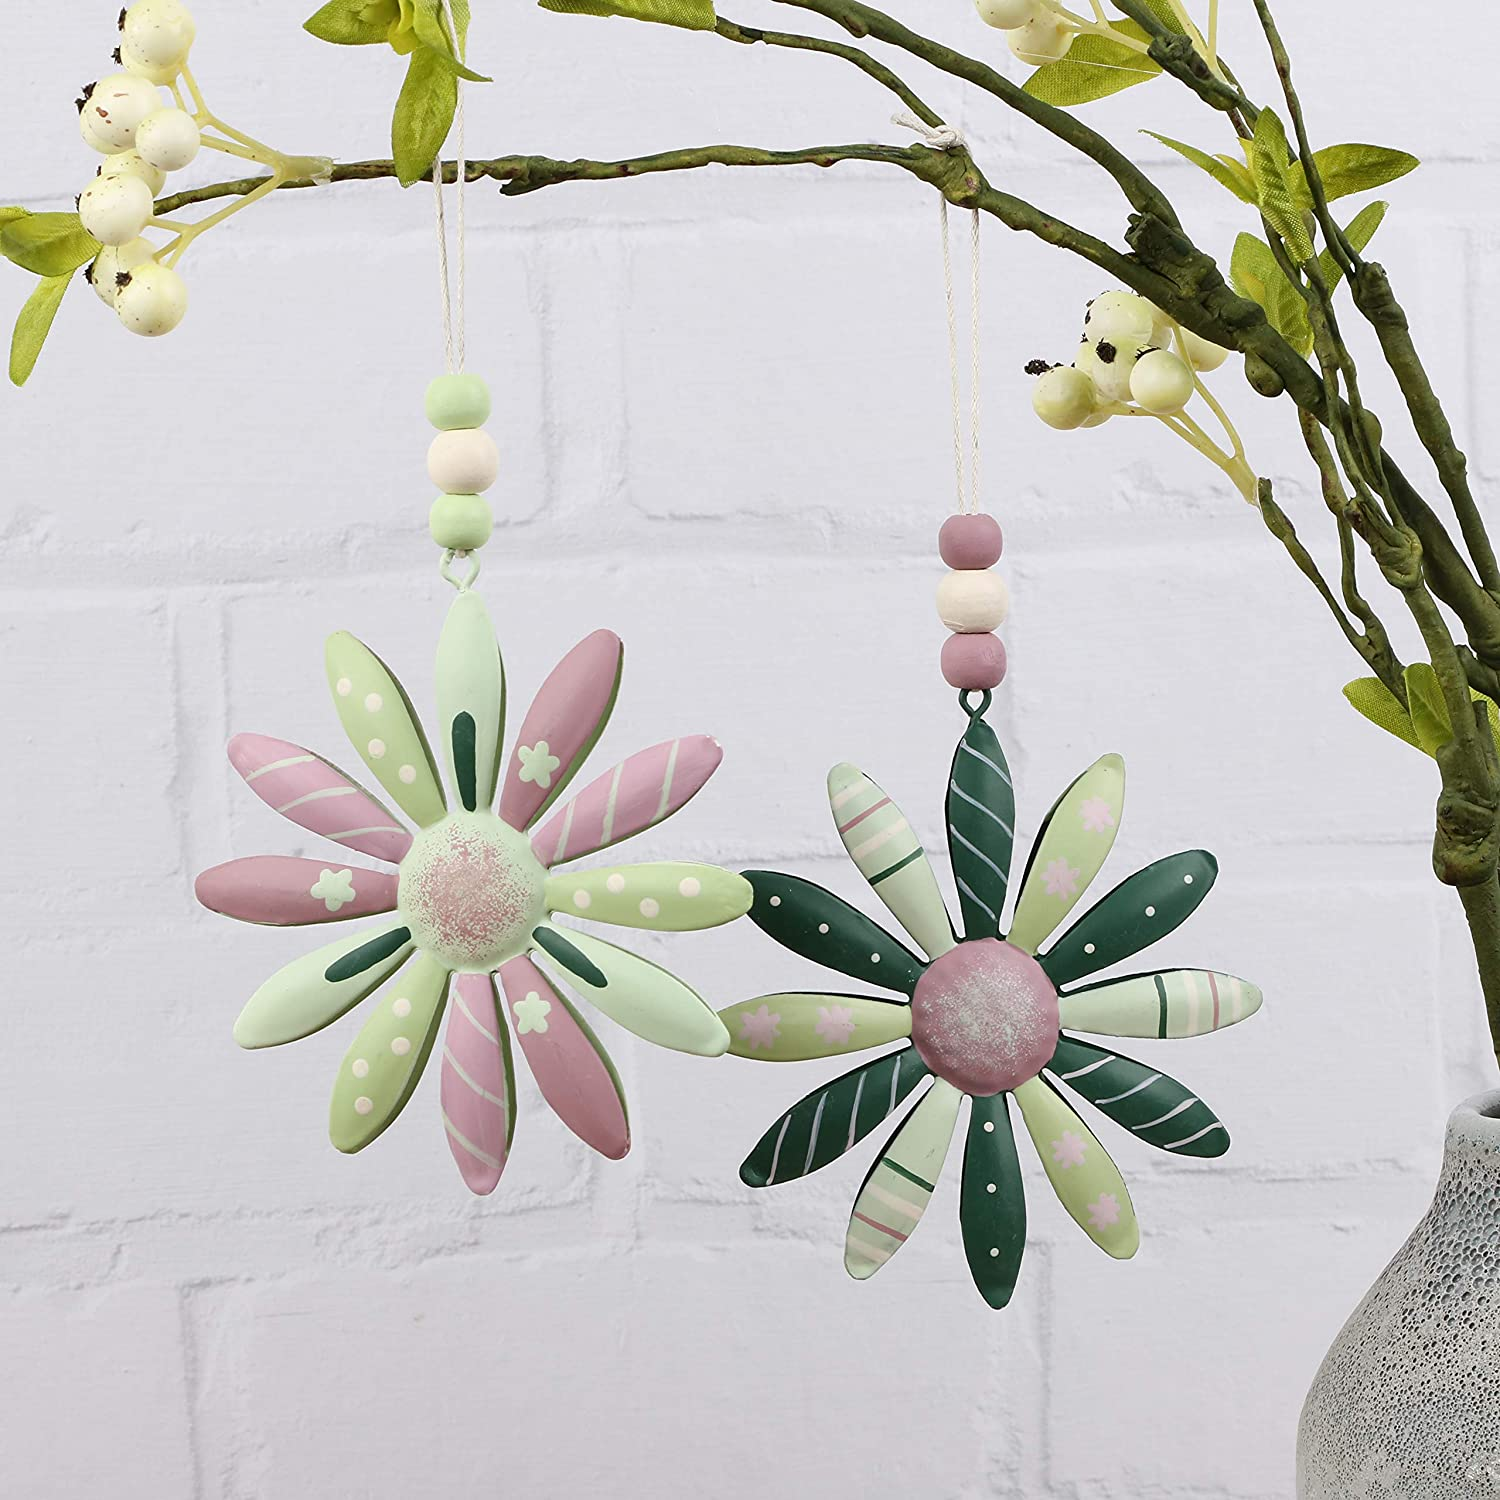 Valery Madelyn Wooden Easter Hanging Decoration Set 3pcs 23.2Inch//59cm Grey and Pink Hollowed Ornament Easter Eggs Bunnies Butterflies and Flowers Shaped Pendants with feather for Spring Decor